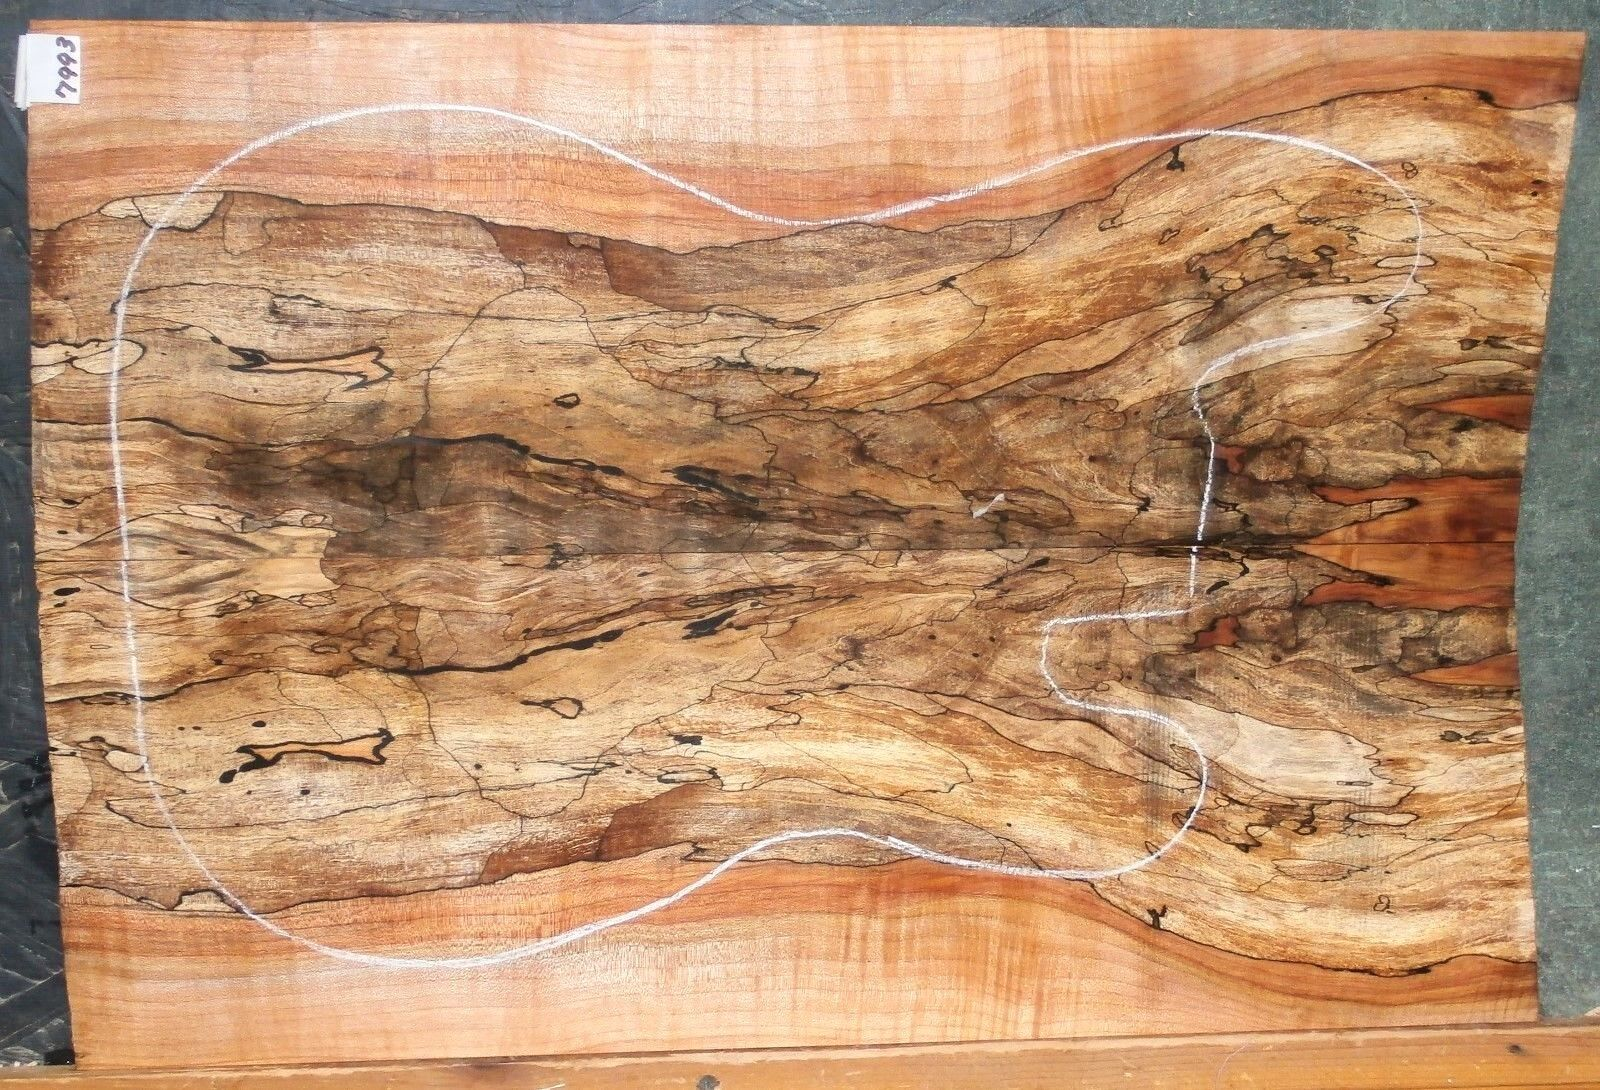 Spalted Curly Maple Wood 7993 Luthier Solid Body Guitar Top Set 241 2x 16 x 5 16